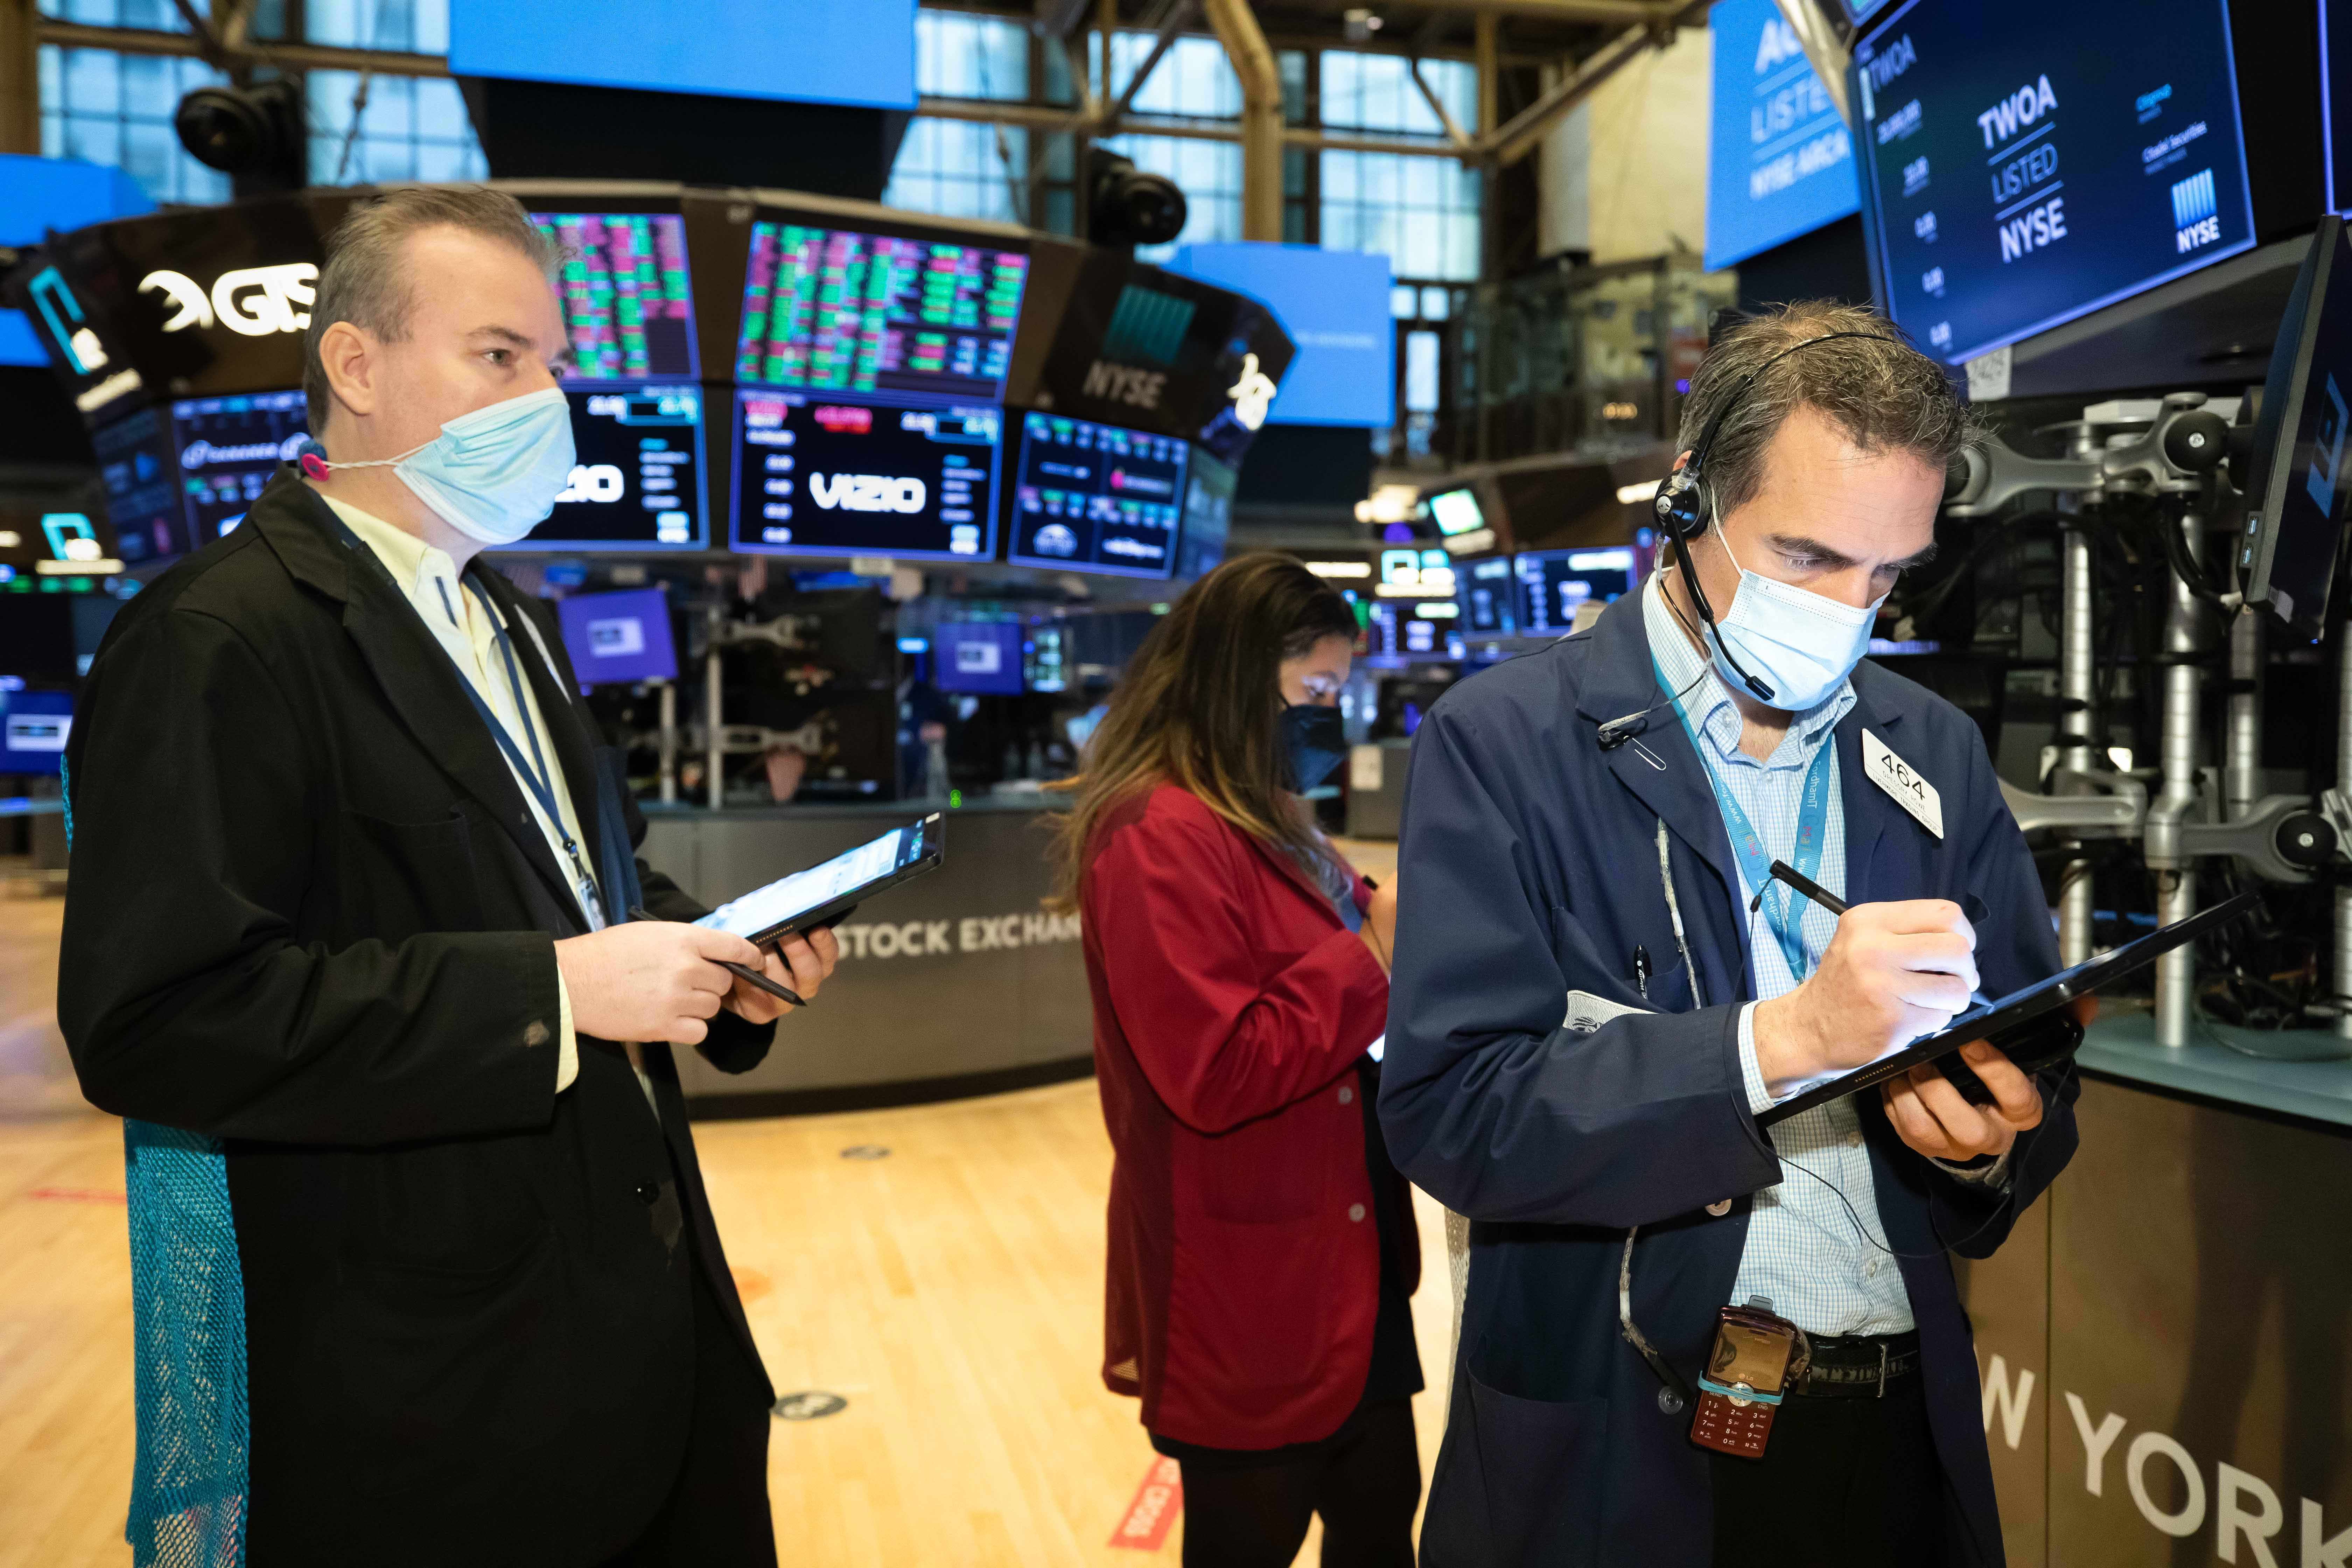 This week's market decline looks like a brief pause for now, analysts say